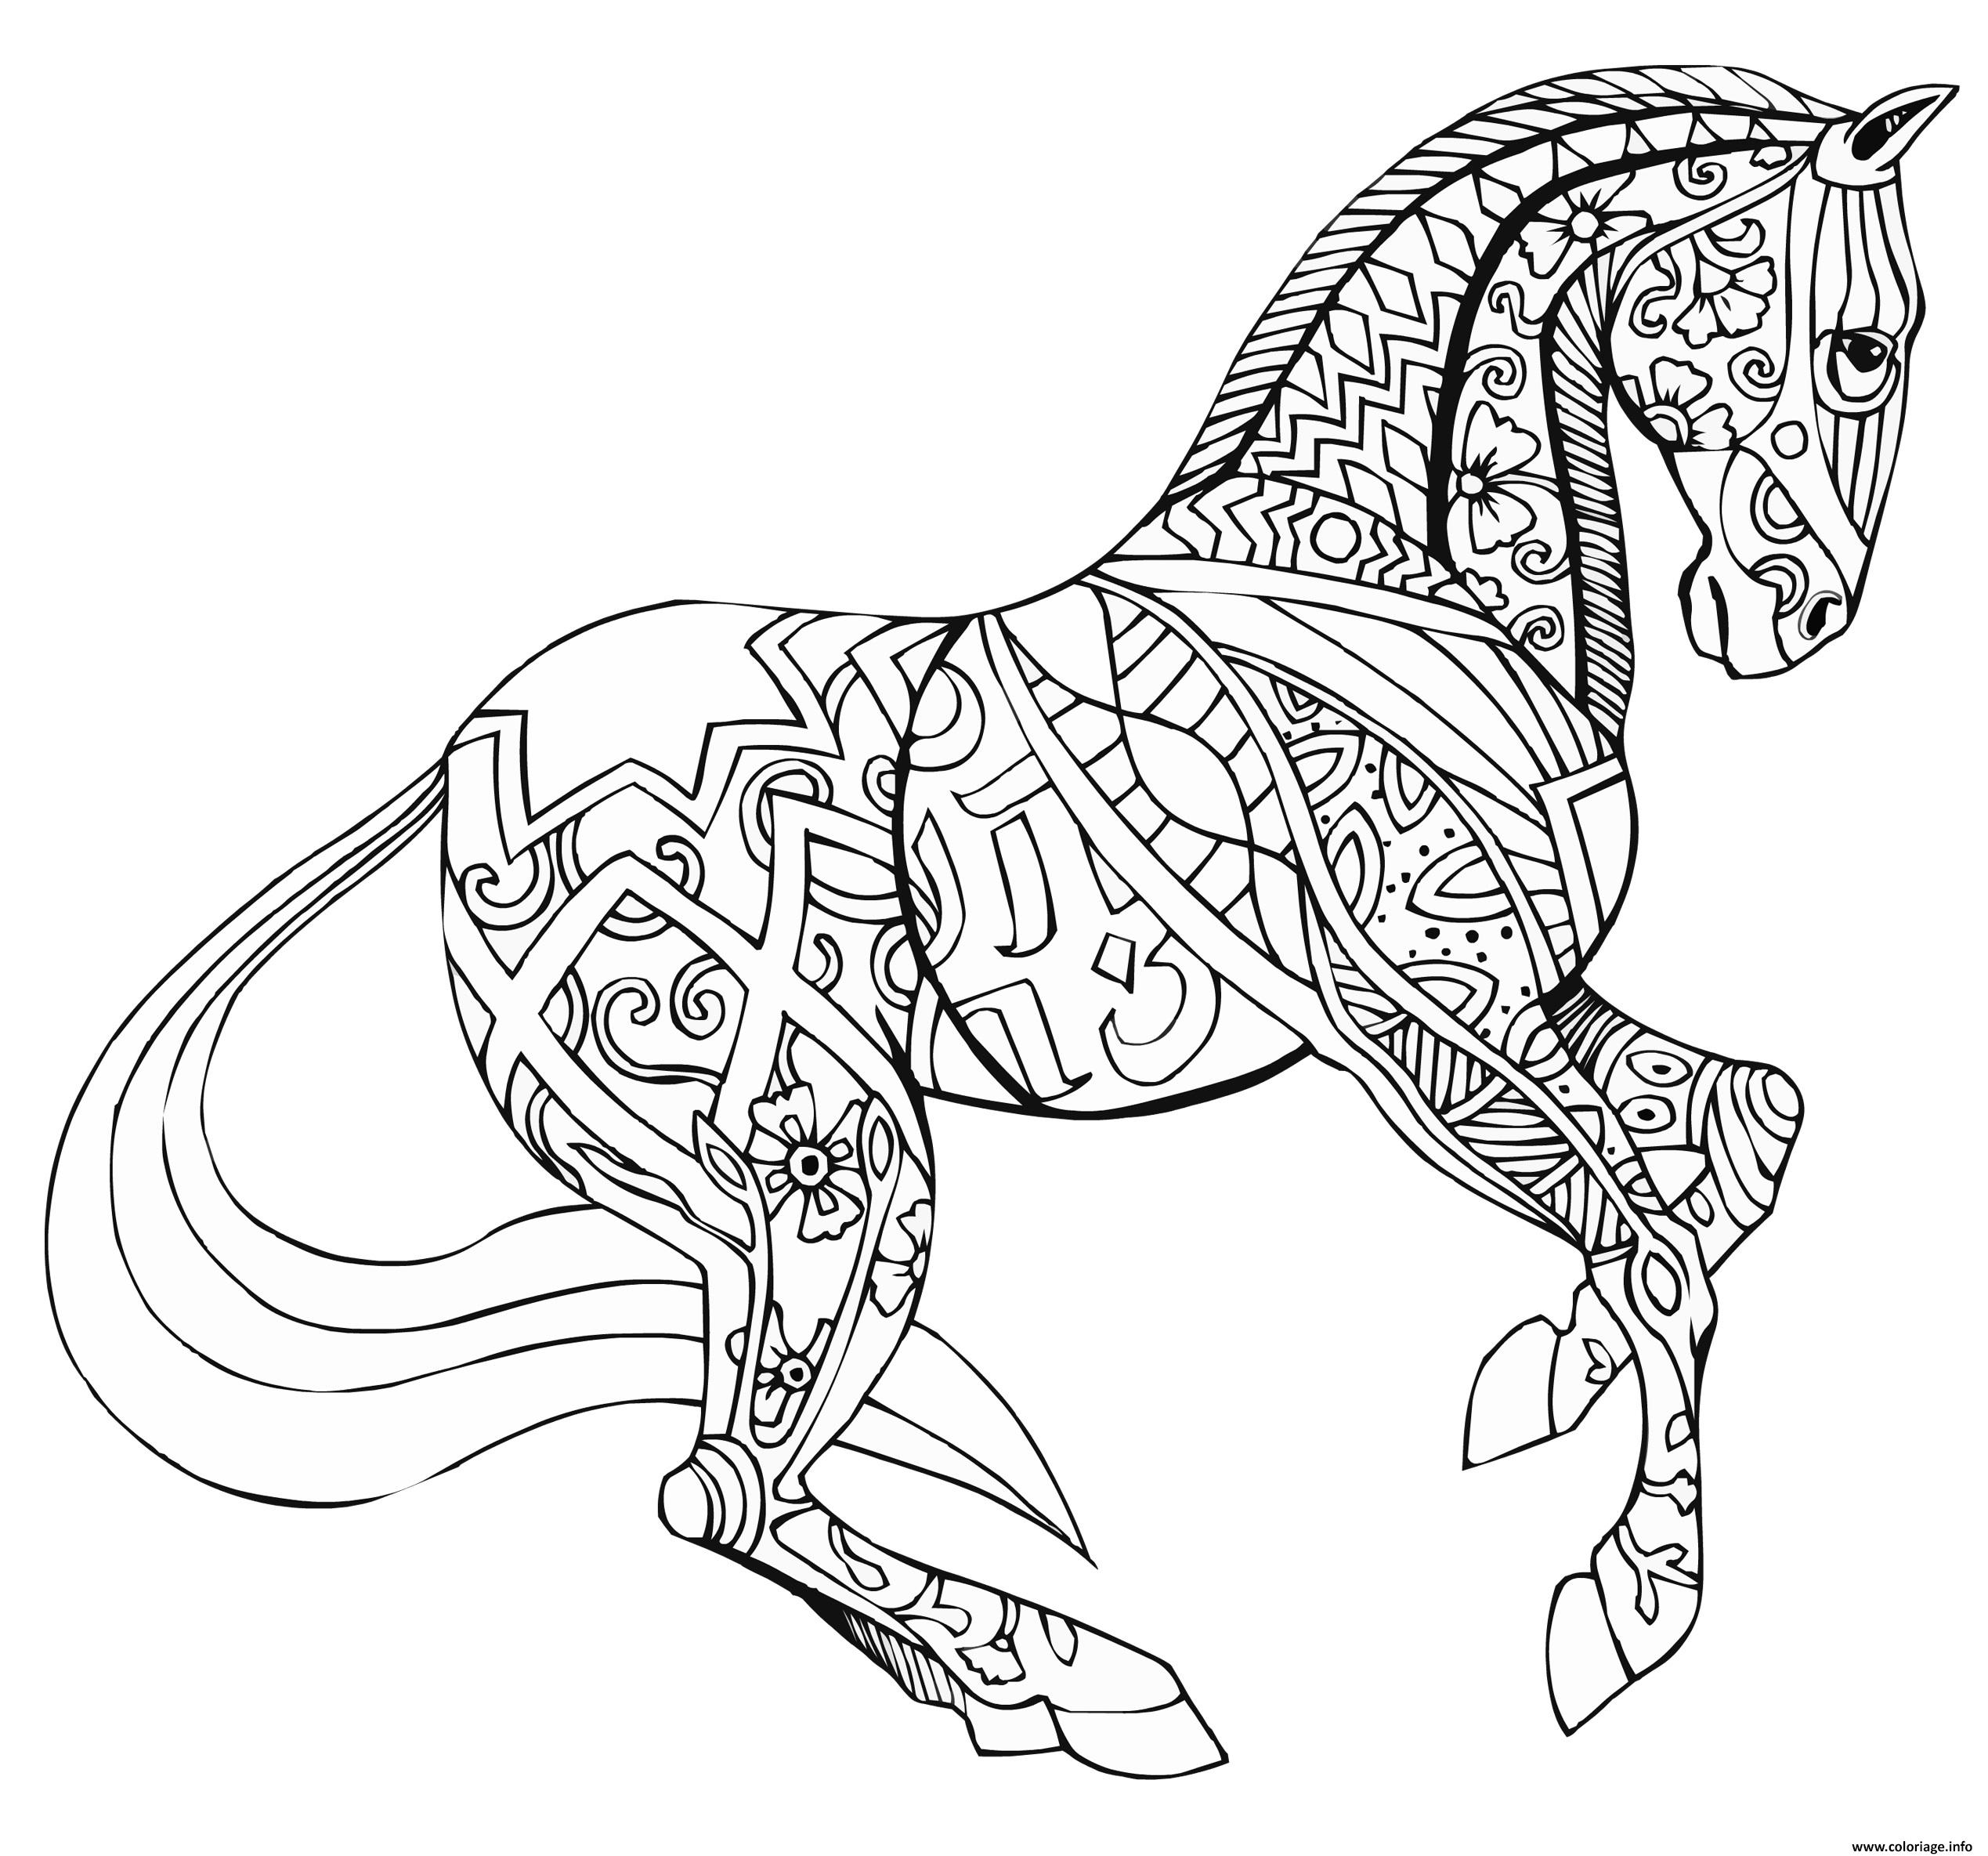 Coloriage adulte cheval par selah works dessin - Cheval coloriage en ligne ...